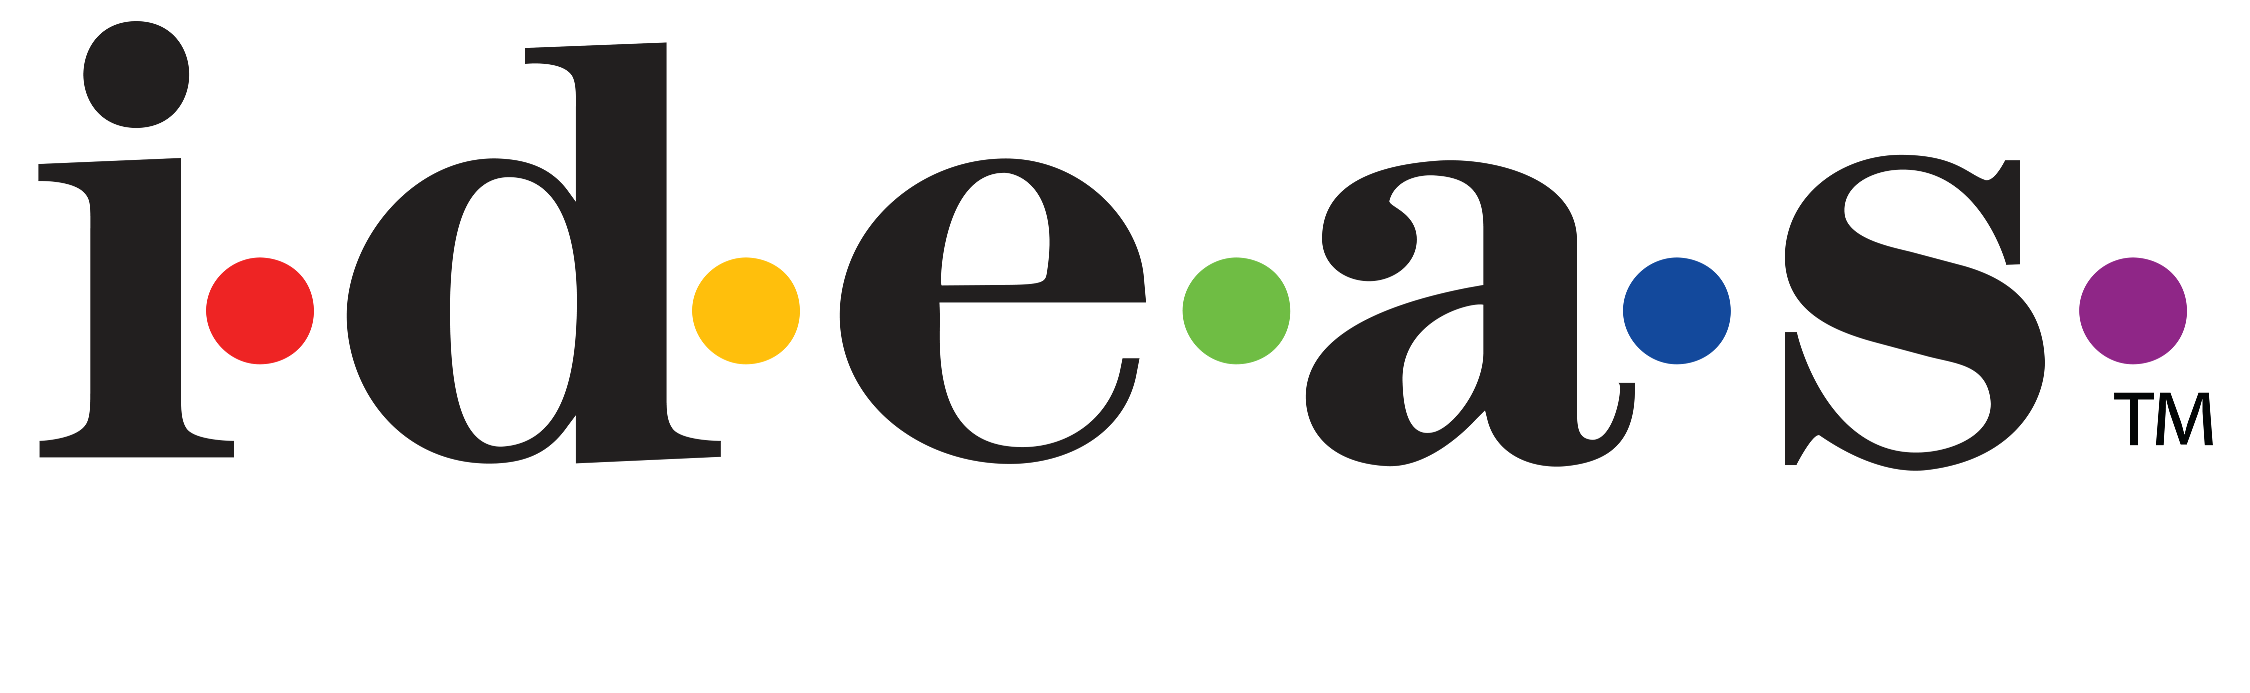 ideas_logo.png